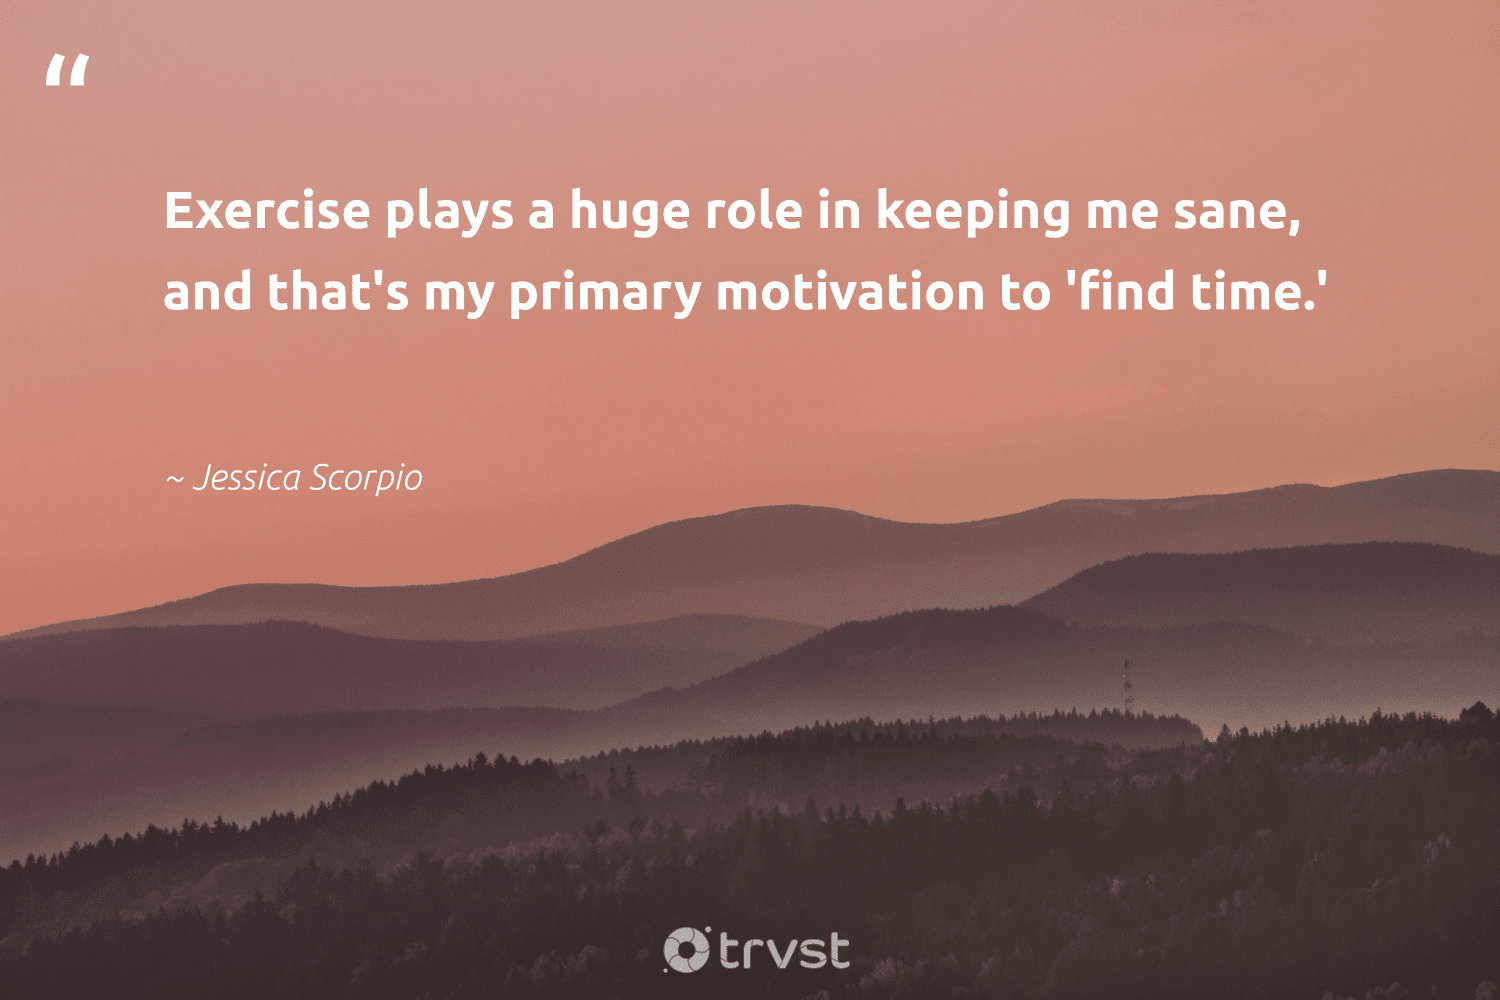 """""""Exercise plays a huge role in keeping me sane, and that's my primary motivation to 'find time.'""""  - Jessica Scorpio #trvst #quotes #mindset #motivation #exercise #meditation #begreat #health #planetearthfirst #meditate #nevergiveup #changemakers"""